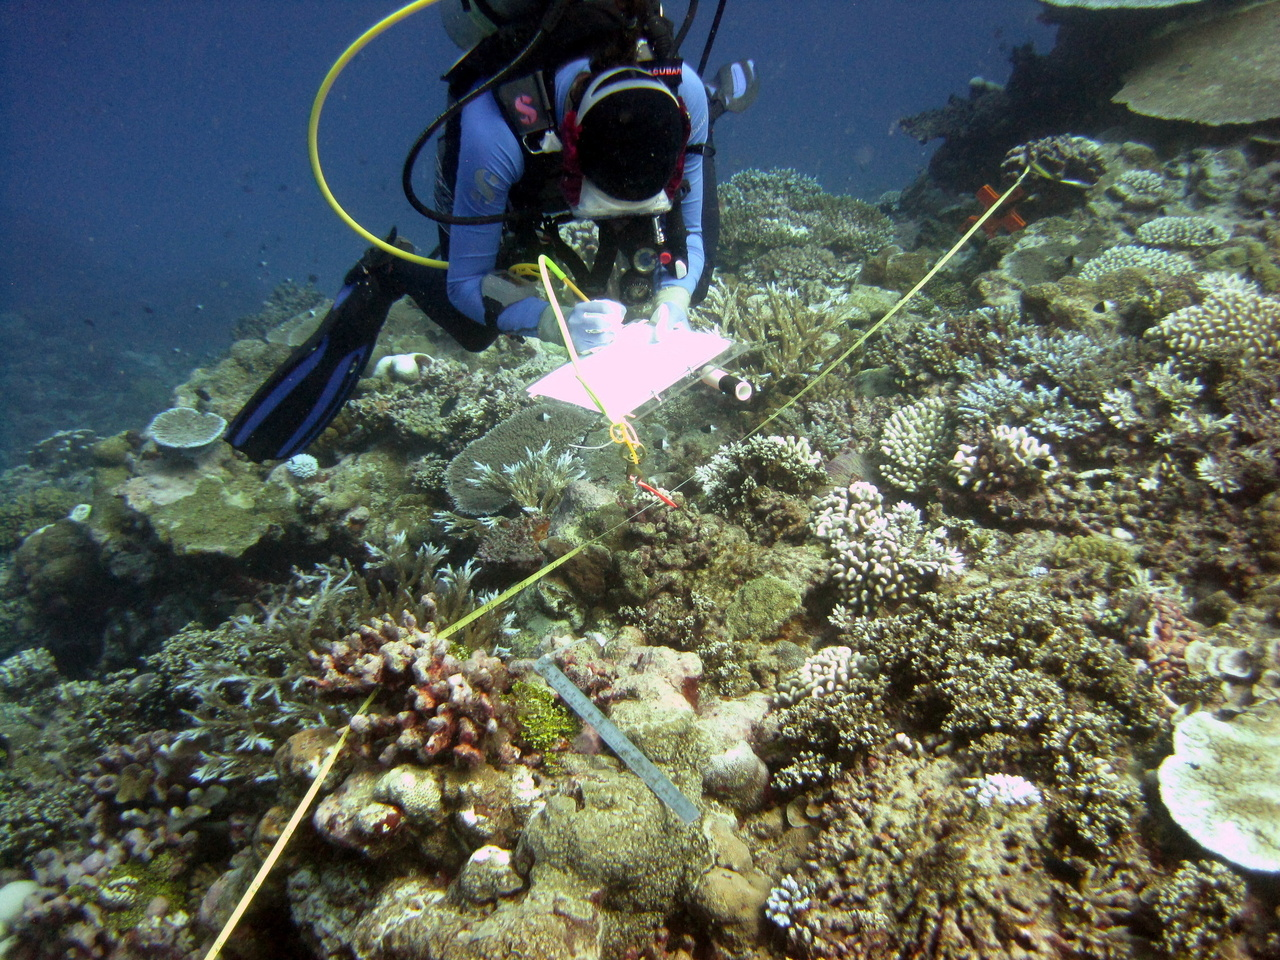 A diver identifies and measures coral colonies along a transect in Tutuila, American Samoa during the 2015 surveys. Photo: NOAA Fisheries.g